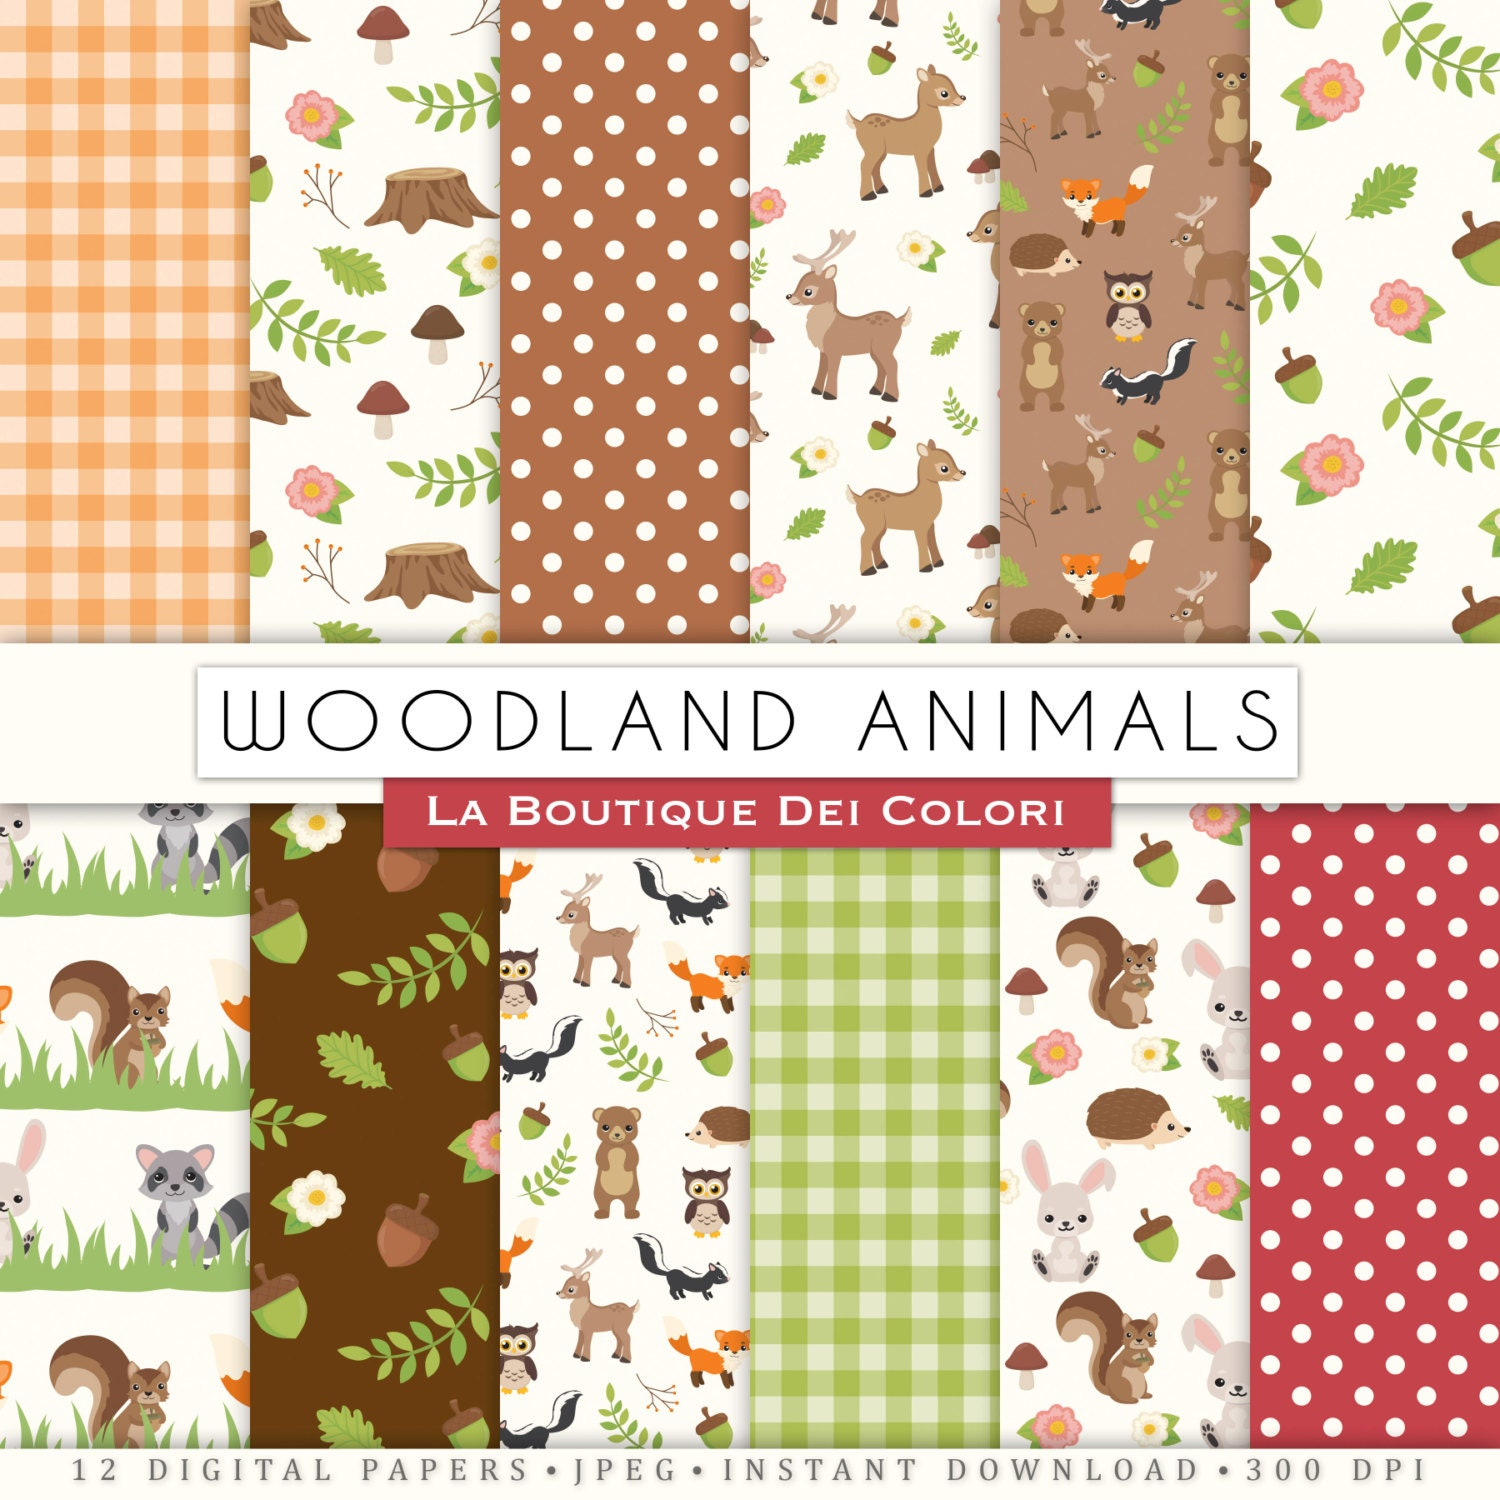 Cute Woodland Animals Digital Paper, Fox, Bear, Deer, Squirrel, Forest scrapbook backgrounds, Seamless patterns for commercial use clipart